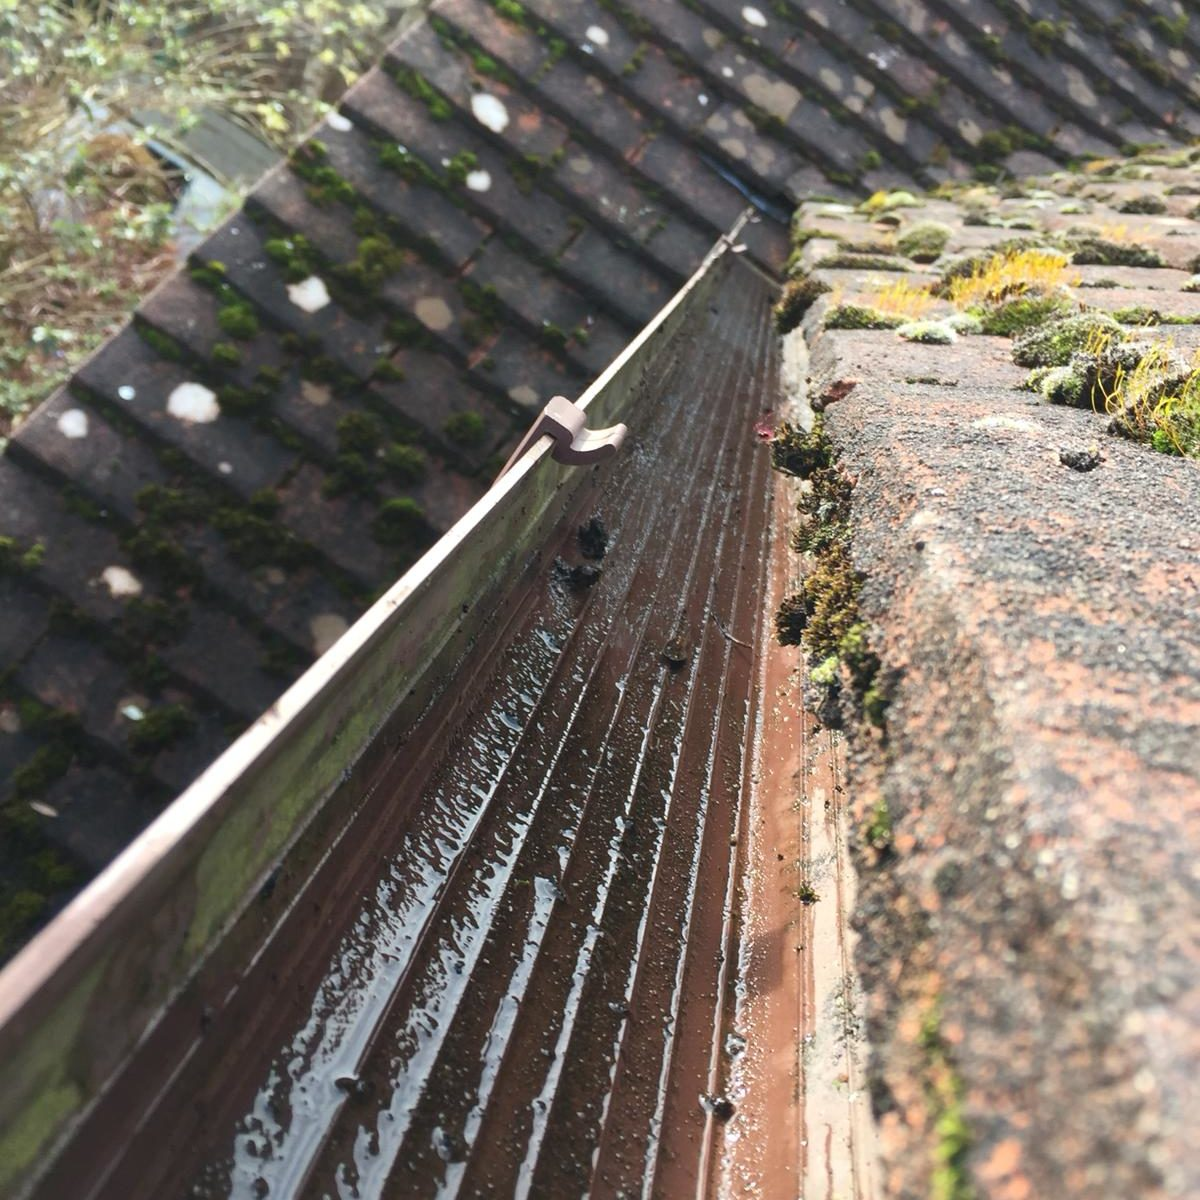 House gutters clear of moss and debris